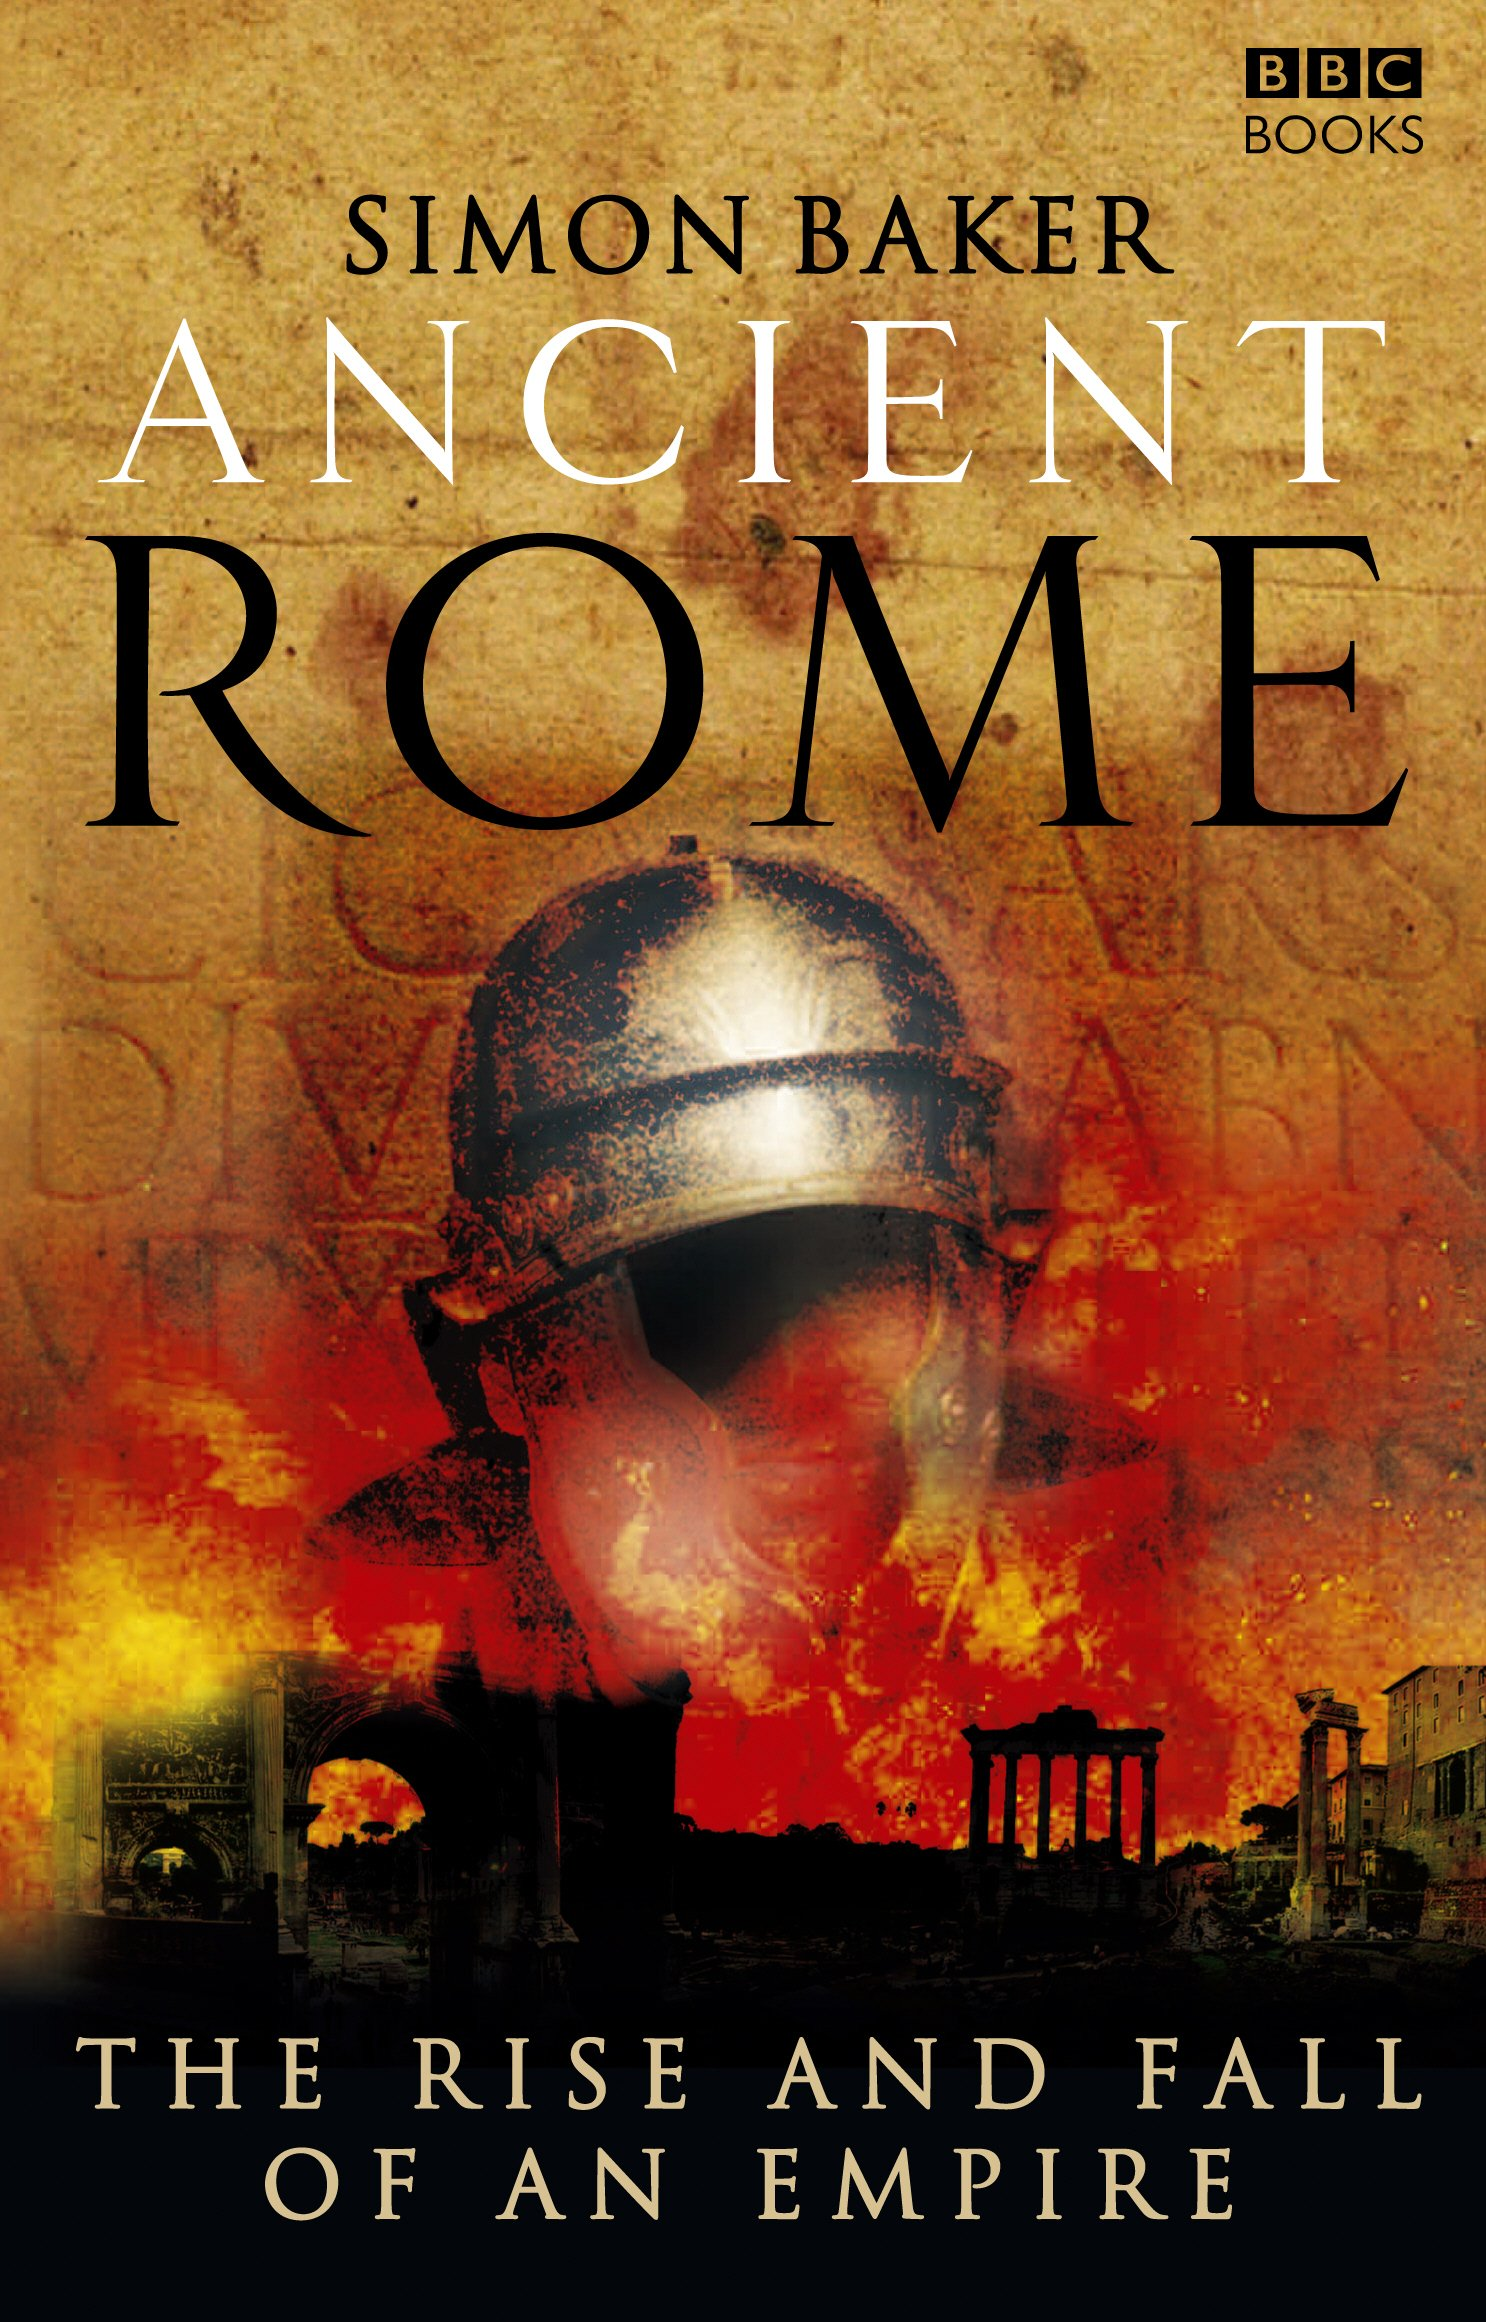 Ancient Rome: The Rise and Fall of An Empire: Simon Baker